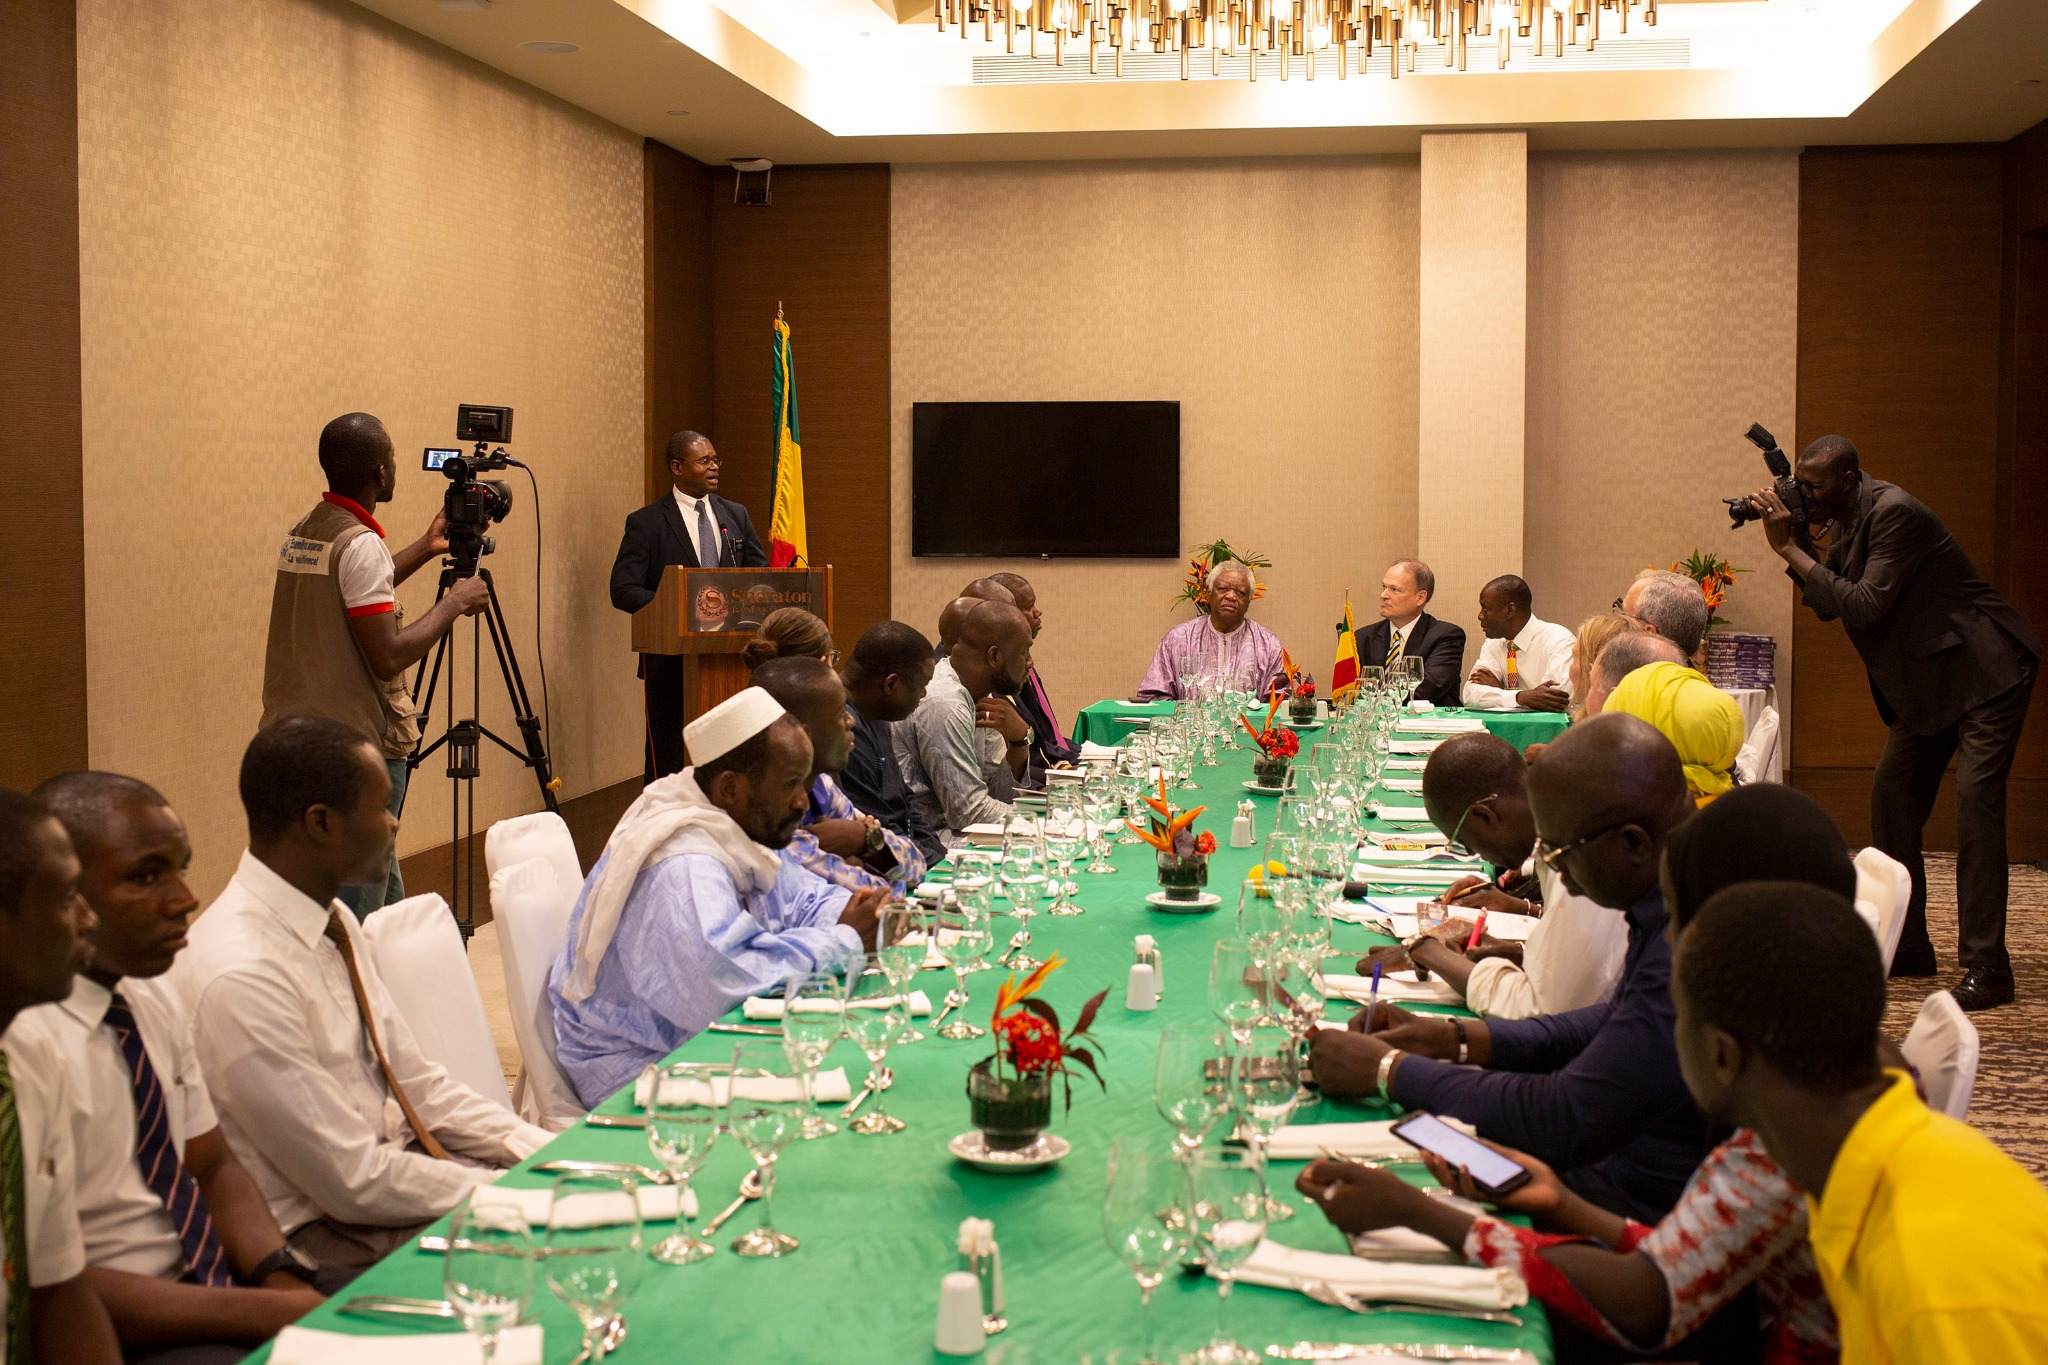 Binene Sabwe, president of the Cote d'Ivoire Abidjan East Mission, speaks to the group during the recognition meeting of The Church of Jesus Christ of Latter-day Saints on Sept. 12, 2019, in Bamako, Mali.